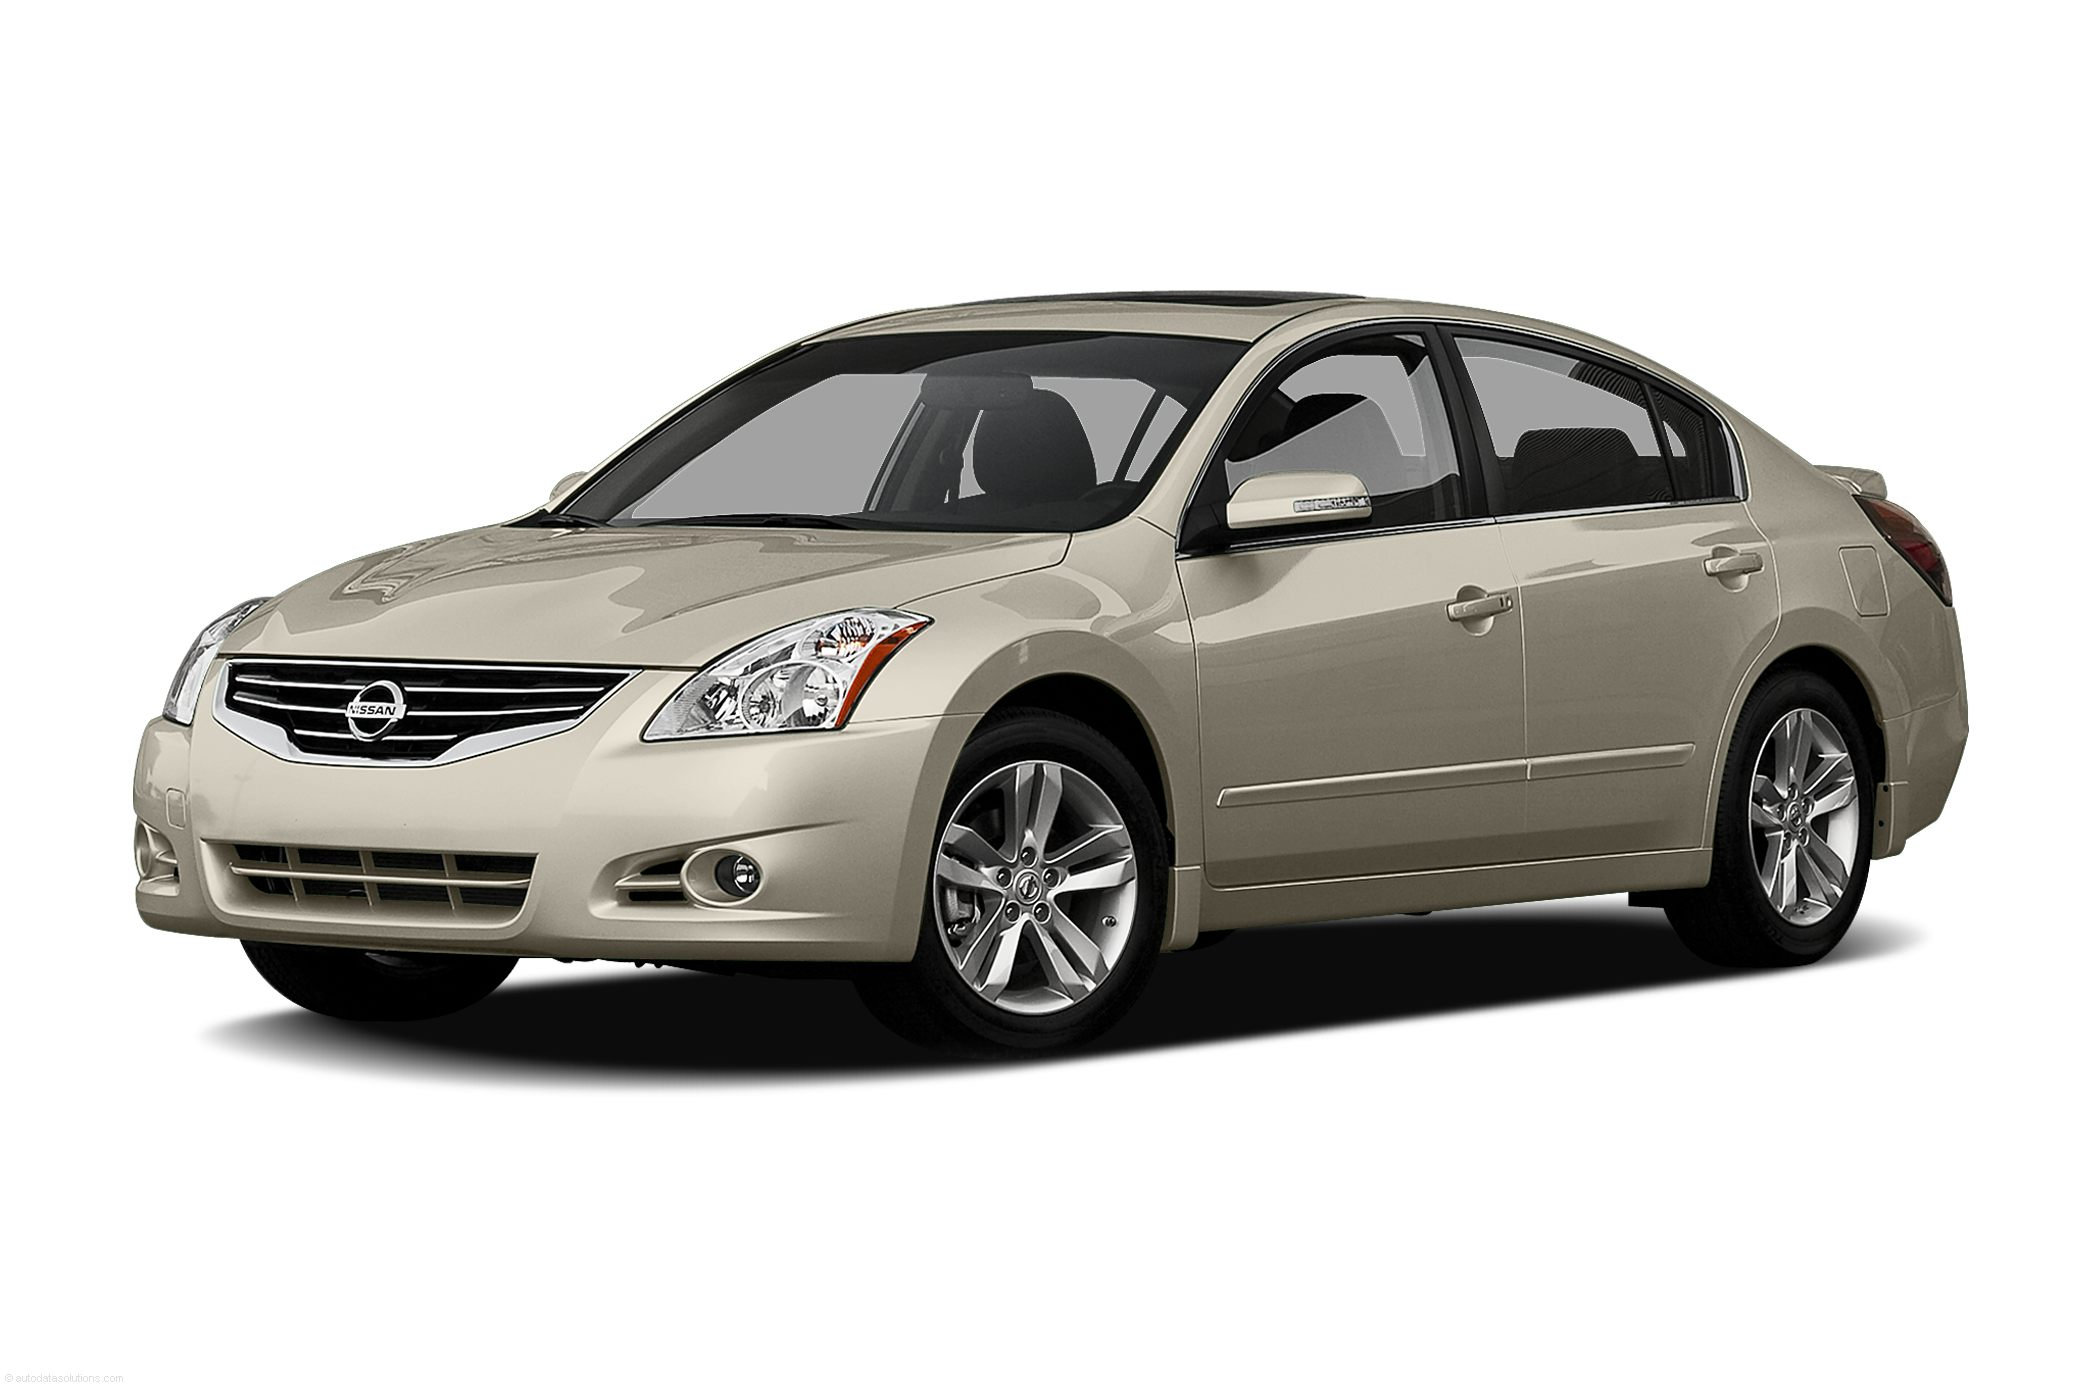 Nissan Altima 2 5 S >> 2010 Nissan Altima - Information and photos - ZombieDrive